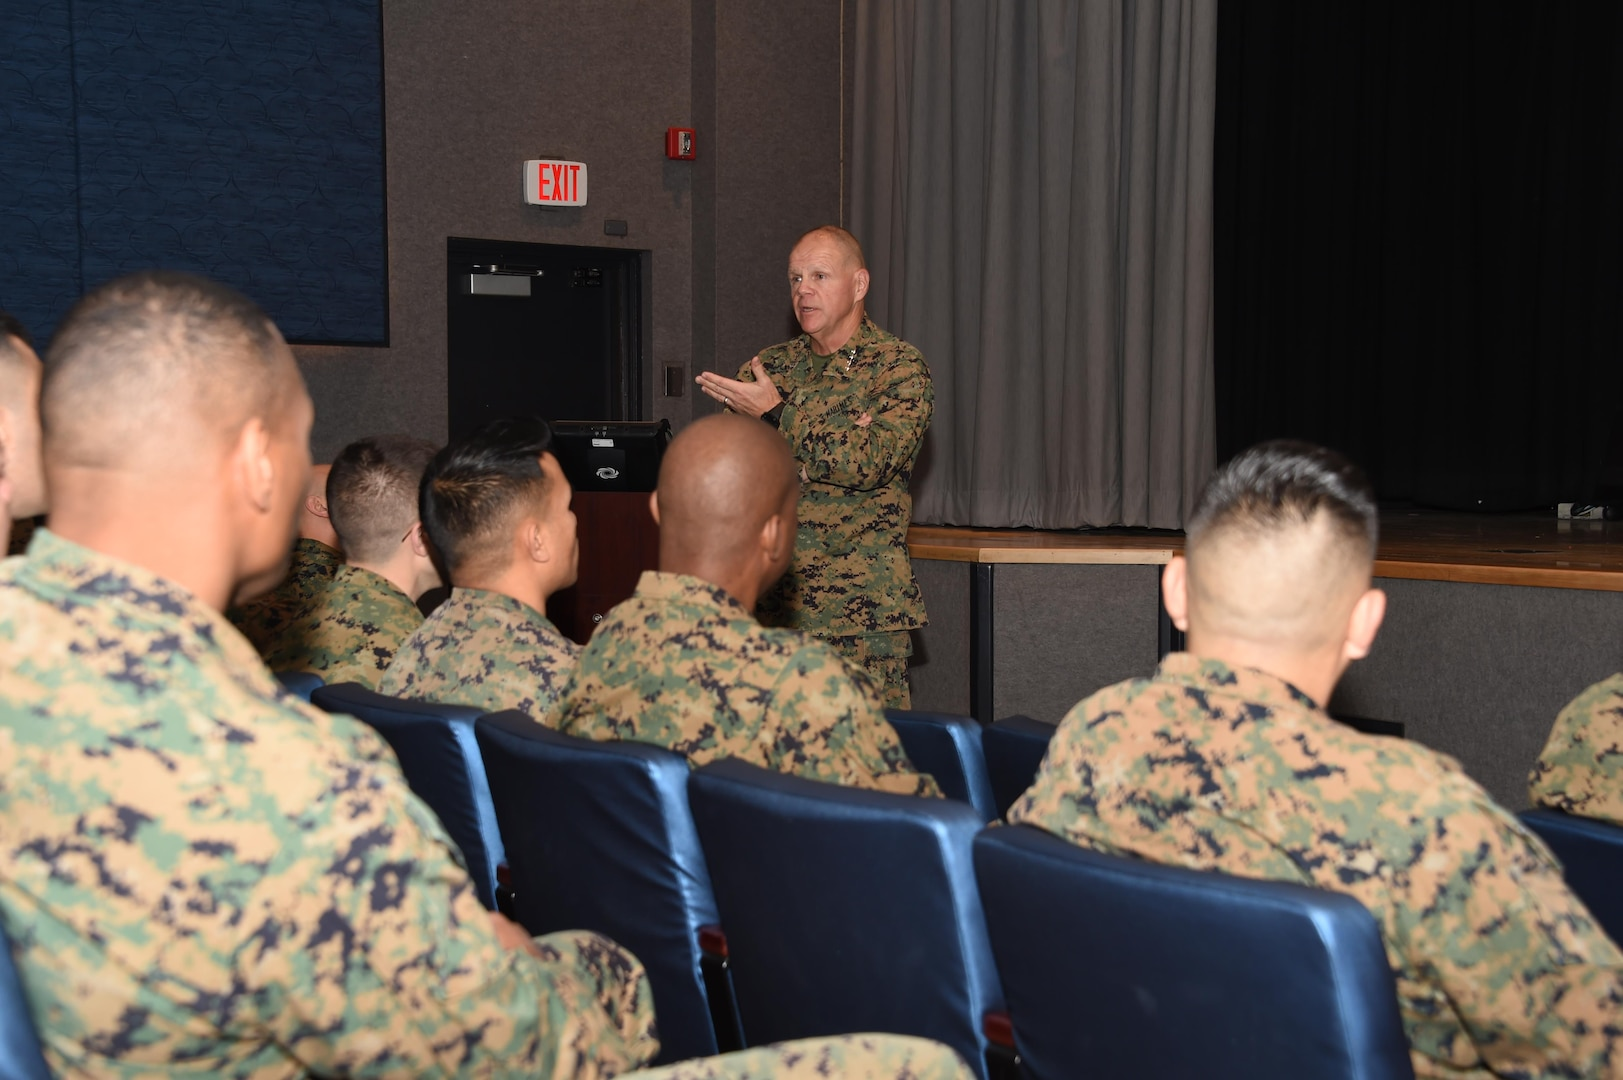 U.S. Marine Corps Gen. Robert B. Neller, Marine Corps commandant, visited U.S. Strategic Command (USSTRATCOM) at Offutt Air Force Base, Nebraska, Dec. 14, for a command orientation and discussions with U.S. Air Force Gen. John E. Hyten, USSTRATCOM commander, and other senior leaders. While here, Neller toured the USSTRATCOM Global Operations Center and received capabilities and integration briefings on nuclear command, control and communication, space, electronic warfare, and cyber. Neller also held an All Hands Call with Marines assigned to USSTRATCOM headquarters. One of nine DoD unified combatant commands USSTRATCOM has global strategic missions, assigned through the Unified Command Plan, which include strategic deterrence; space operations; cyberspace operations; joint electronic warfare; global strike; missile defense; intelligence, surveillance and reconnaissance; combating weapons of mass destruction; and analysis and targeting.